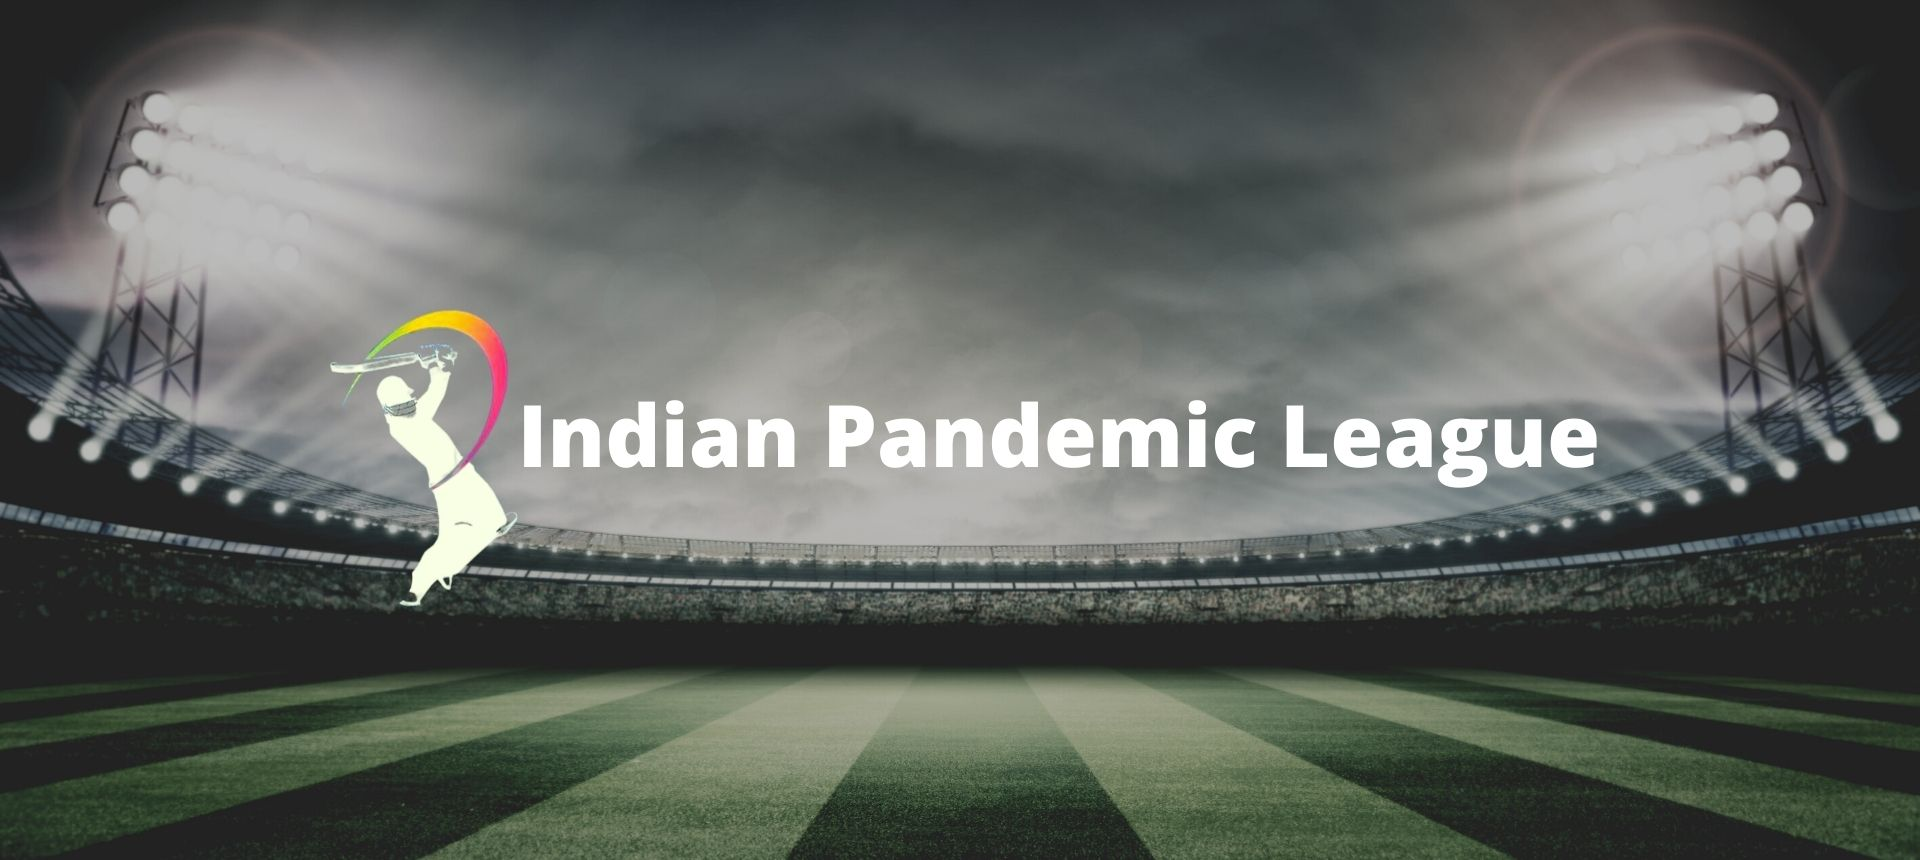 Indian Pandemic League – 8 Nahi, 7:30 Baje